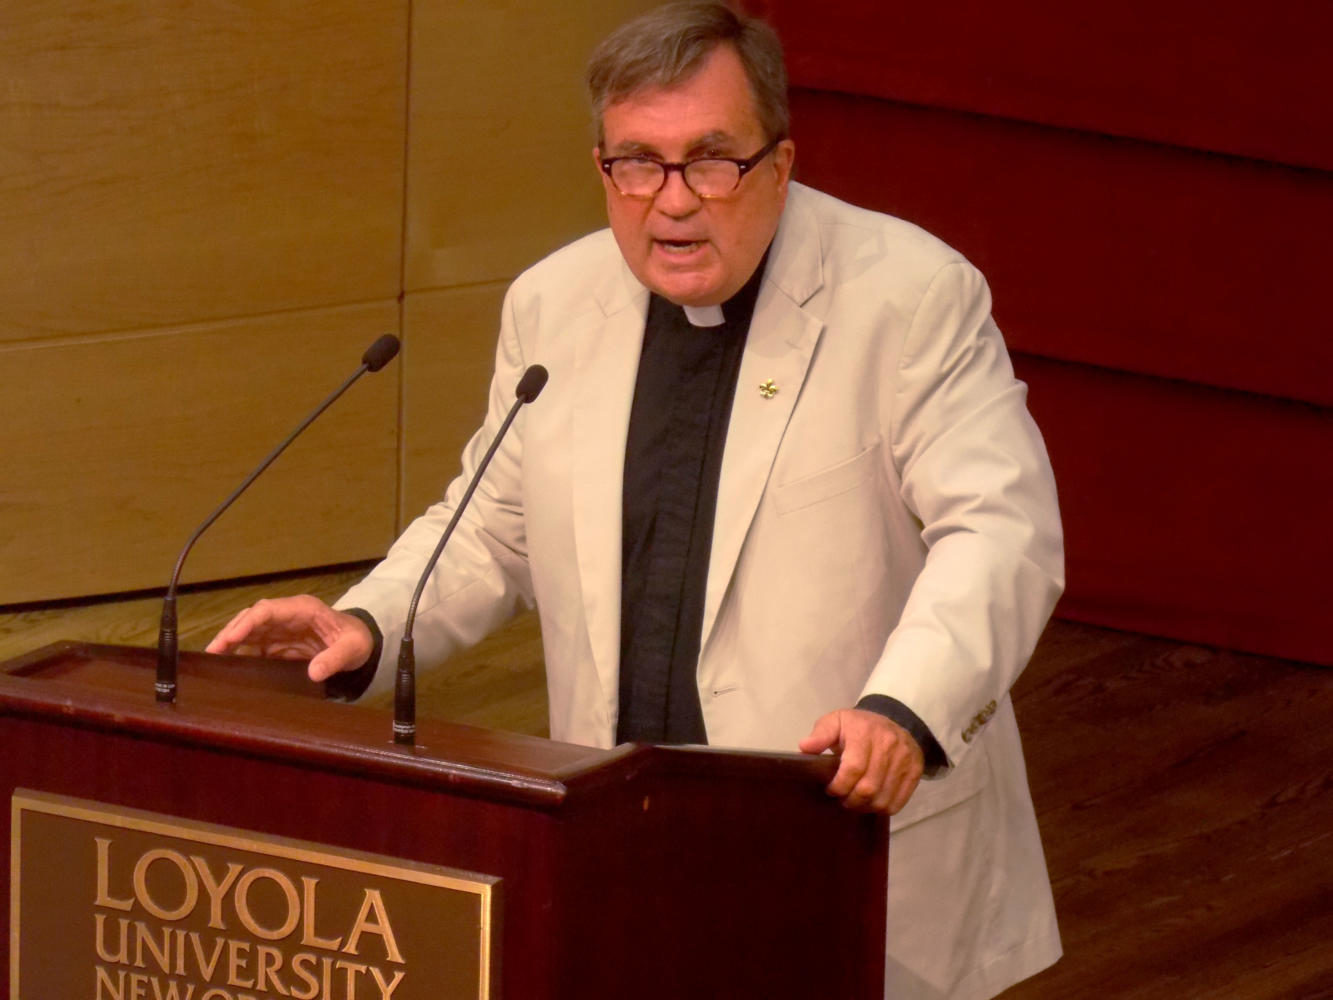 The Rev. Kevin Wildes, S.J., university president, addresses faculty at a convocation. Photo credit: The Maroon